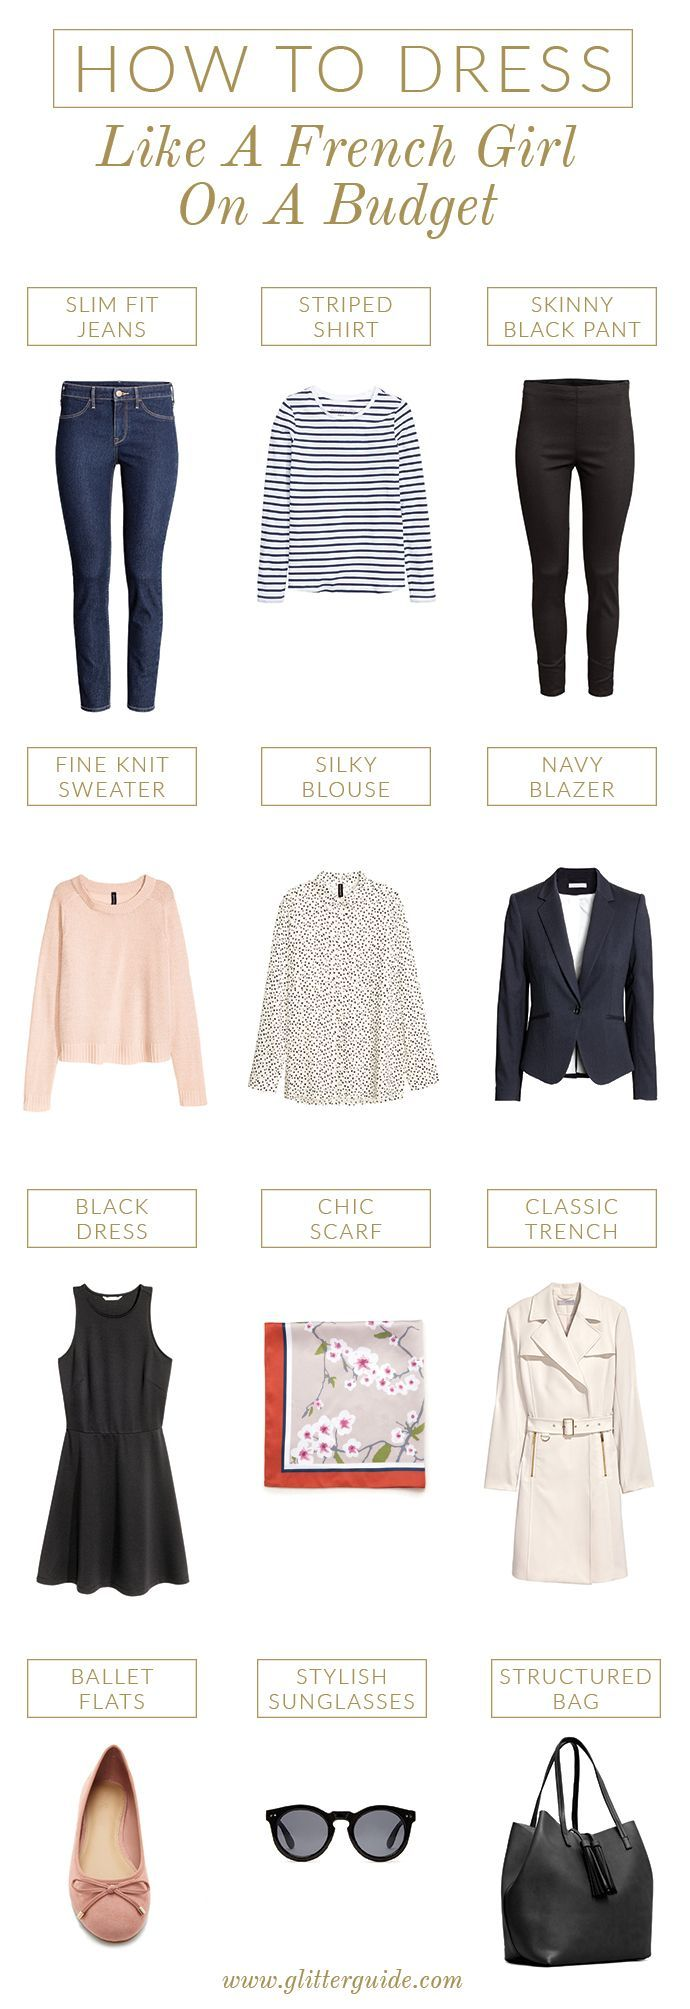 How To Dress Like A French Girl On A Budget | Glitter Guide